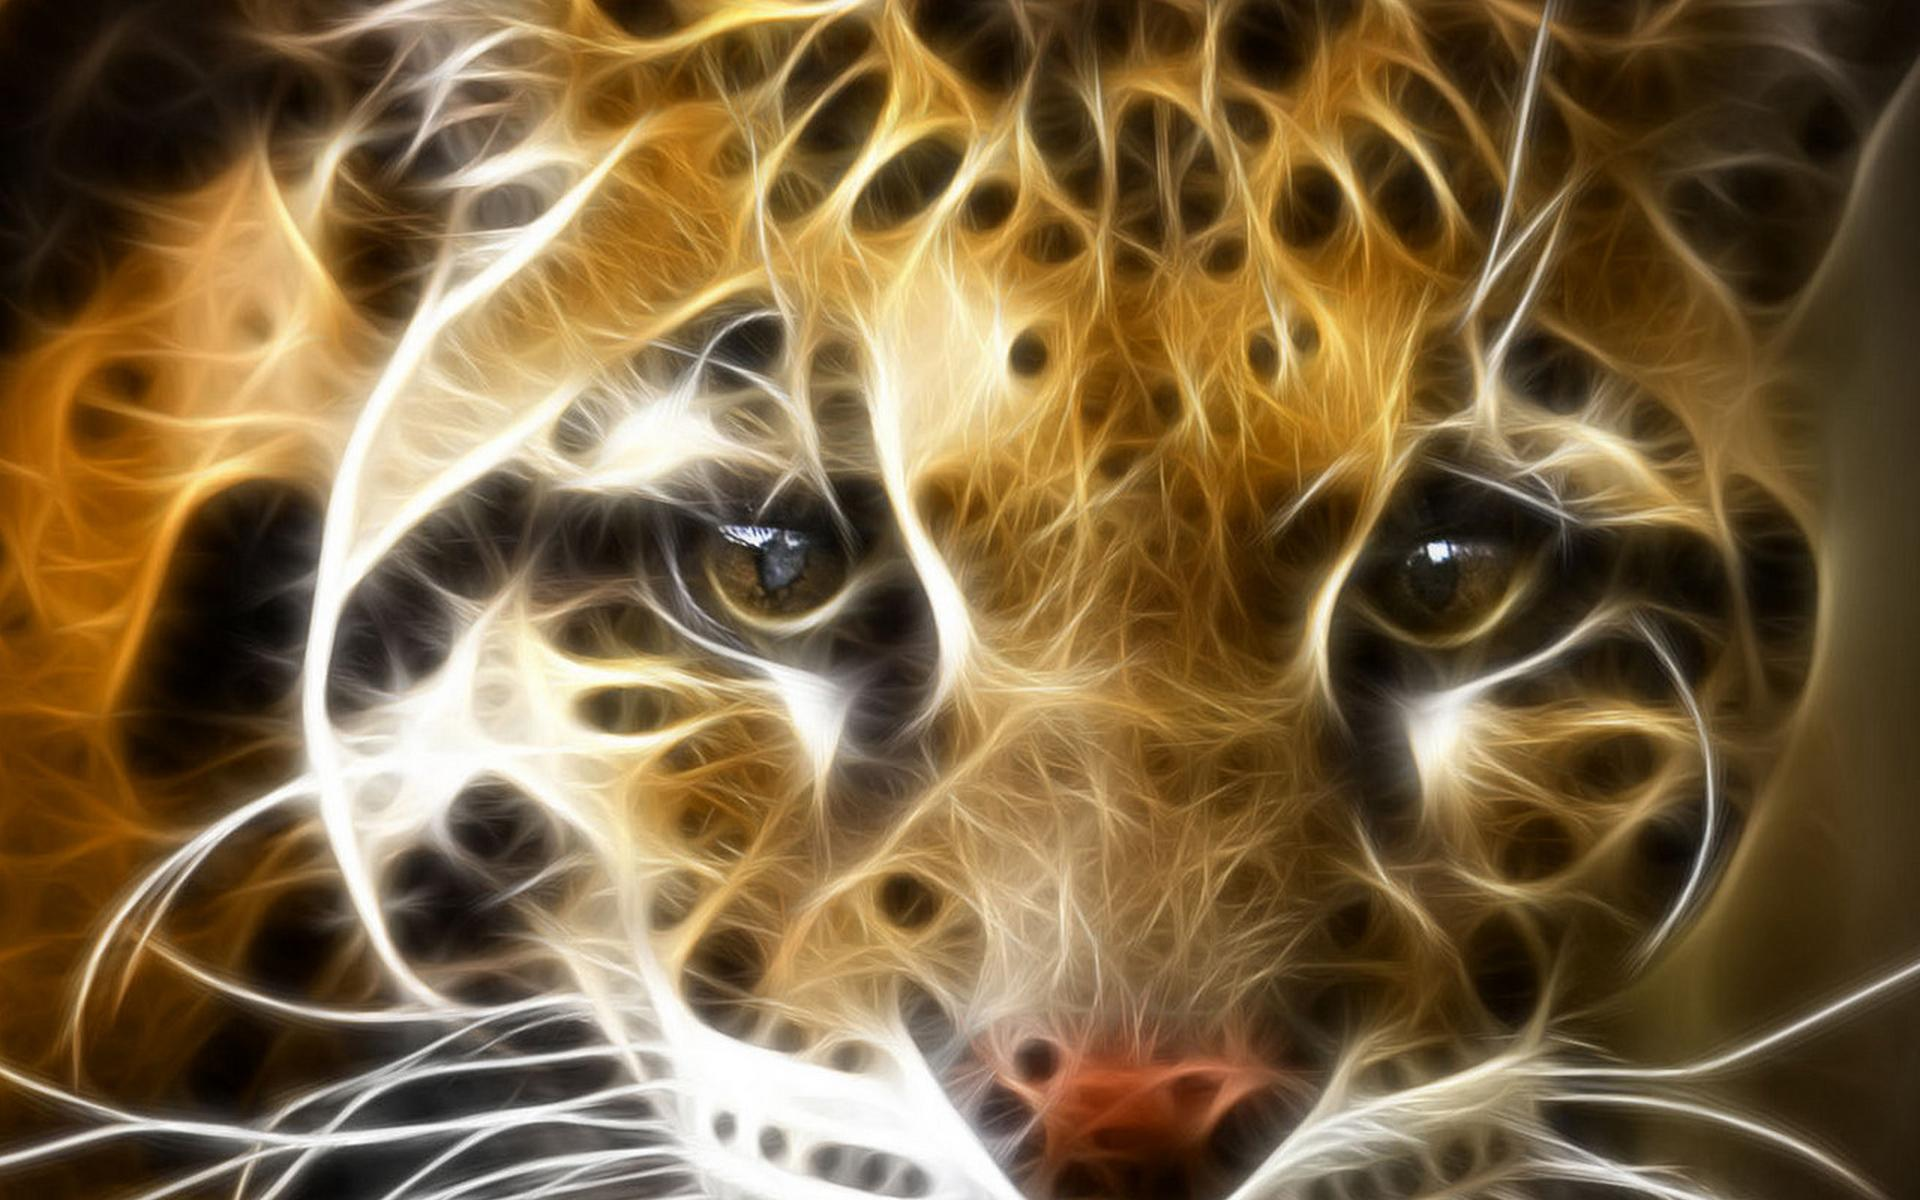 Tiger 3D High Resolution Wallpapers 6525 Amazing Wallpaperz 1920x1200